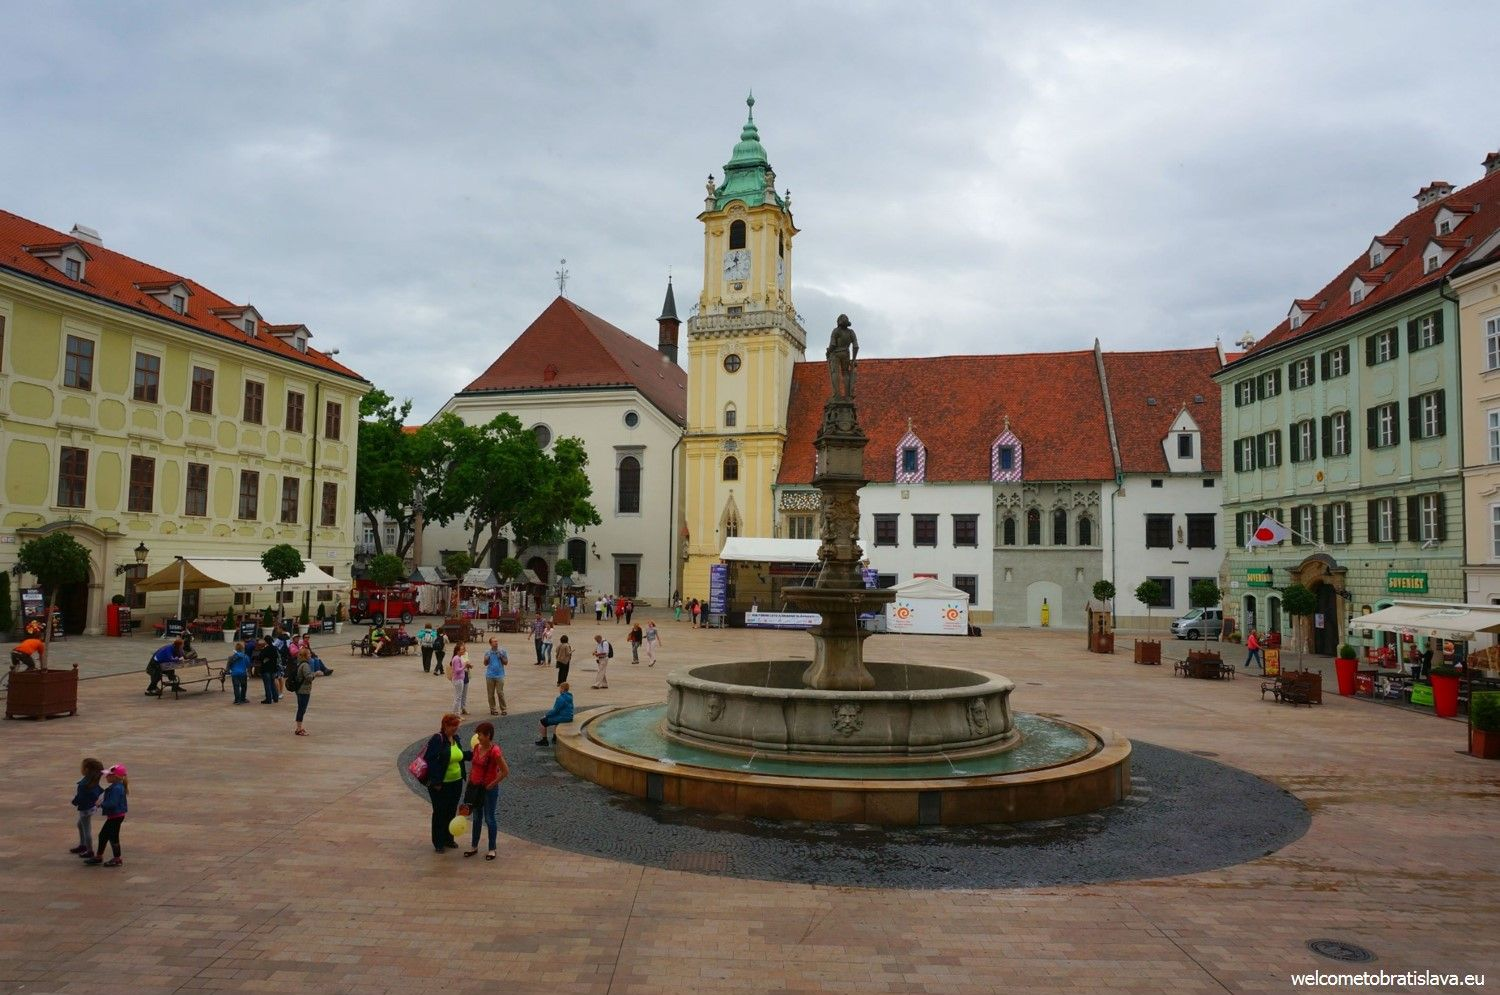 Main square and the Old Town Hall